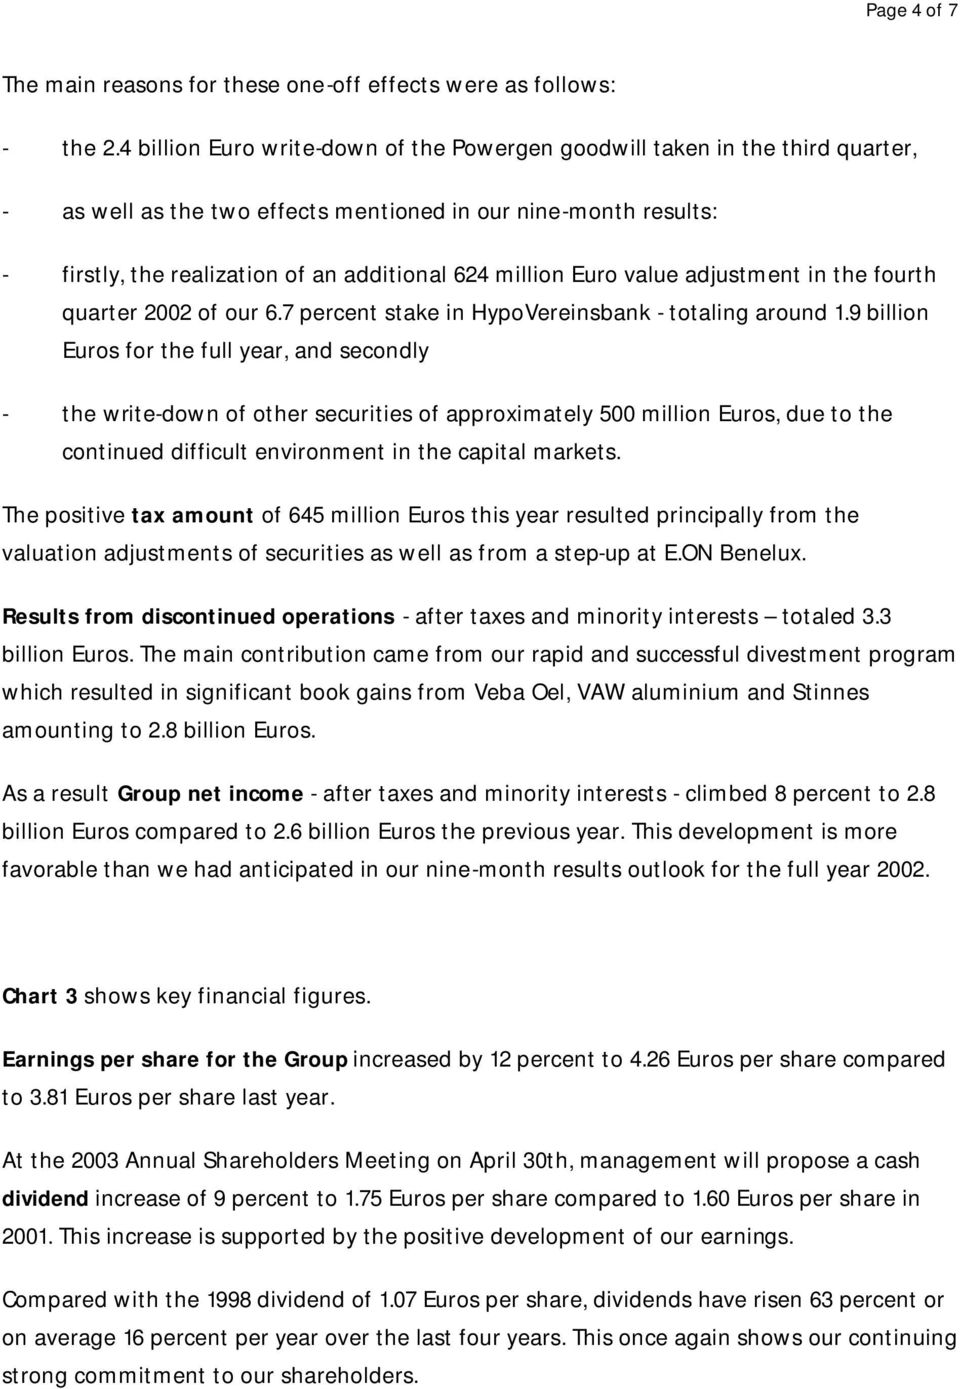 million Euro value adjustment in the fourth quarter 2002 of our 6.7 percent stake in HypoVereinsbank - totaling around 1.